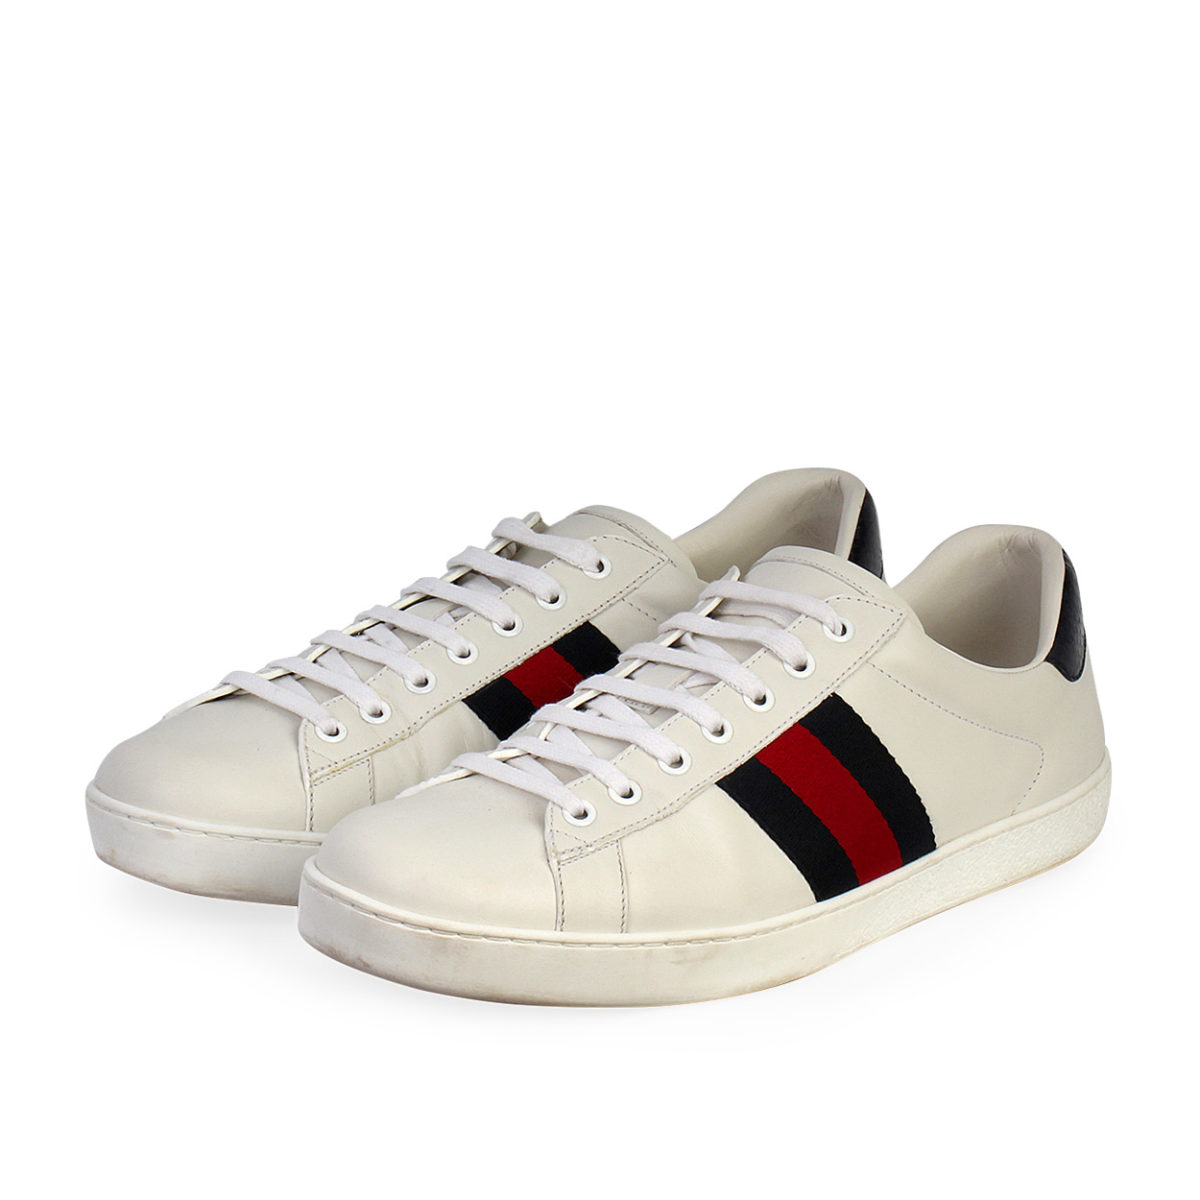 GUCCI Leather Web Ace Sneakers White